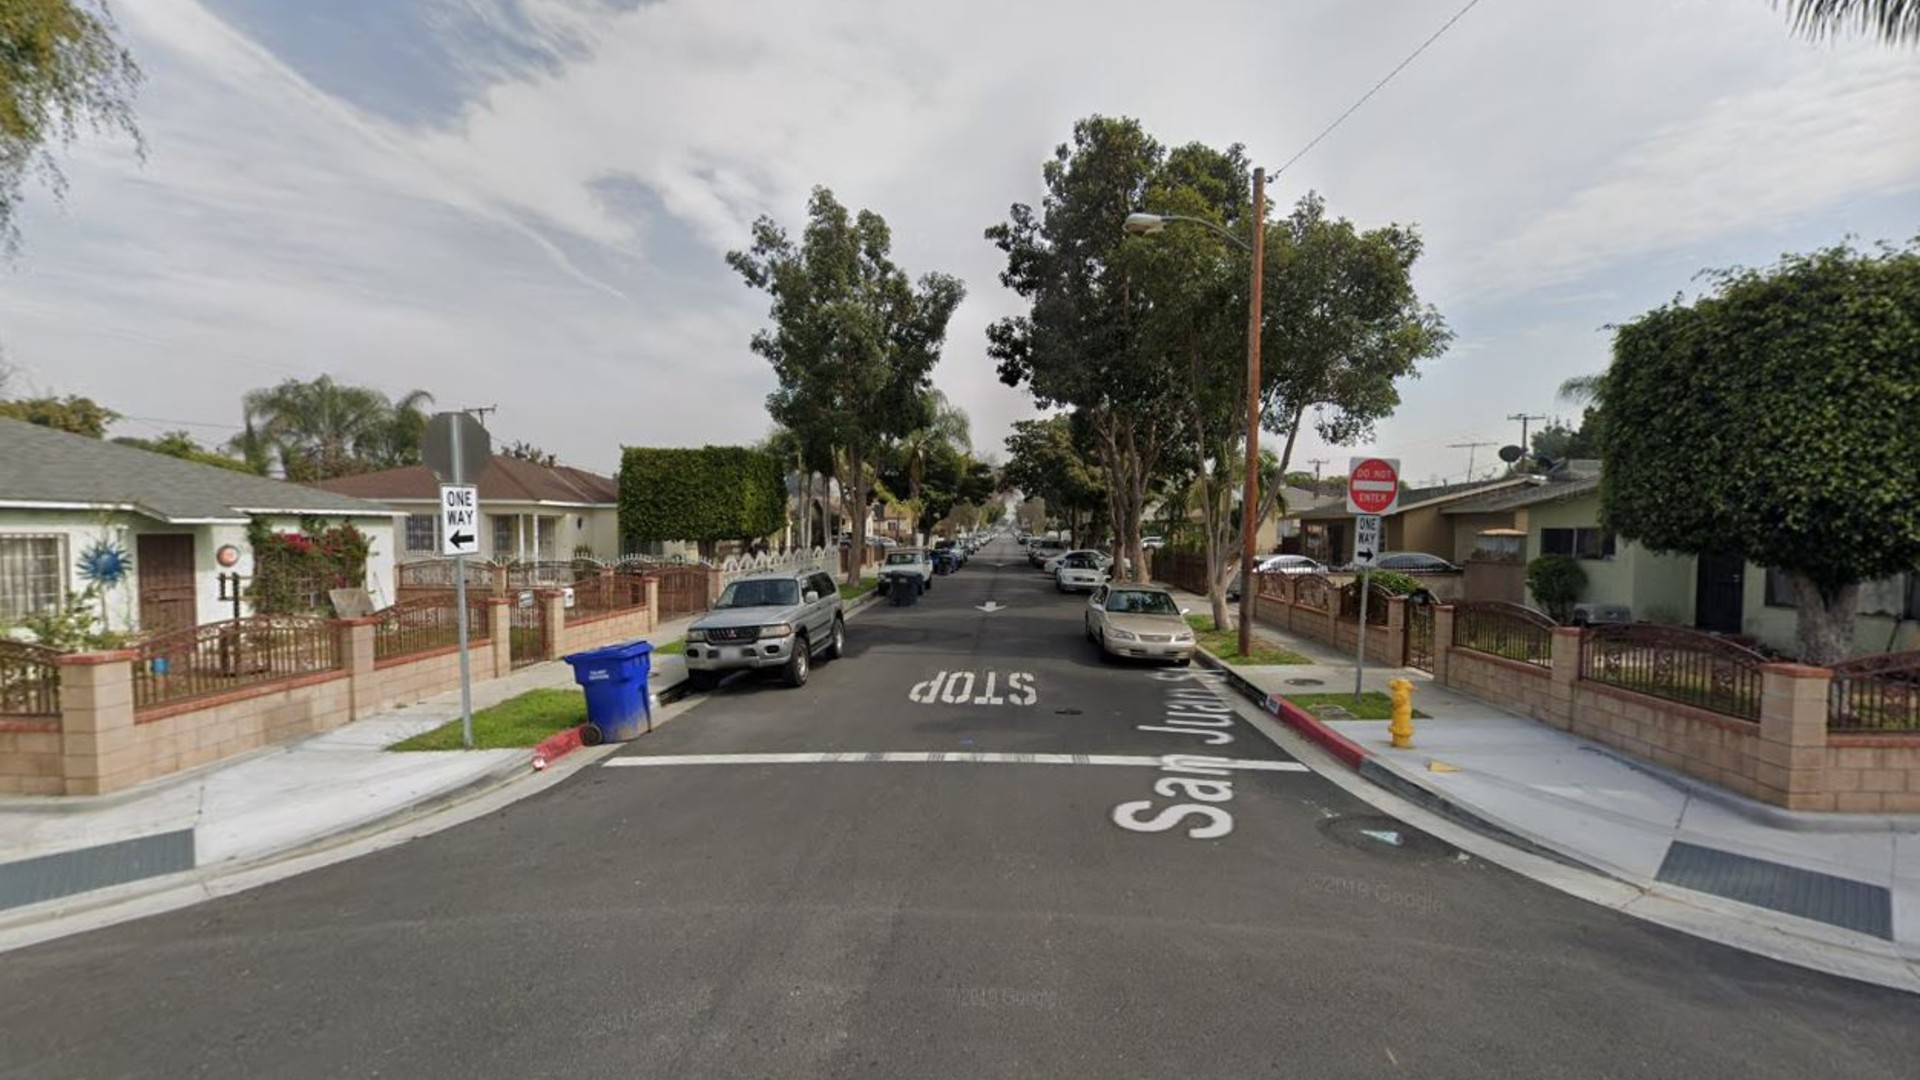 The 6800 block of San Juan Street in Paramount, as viewed in a Google Street View image.